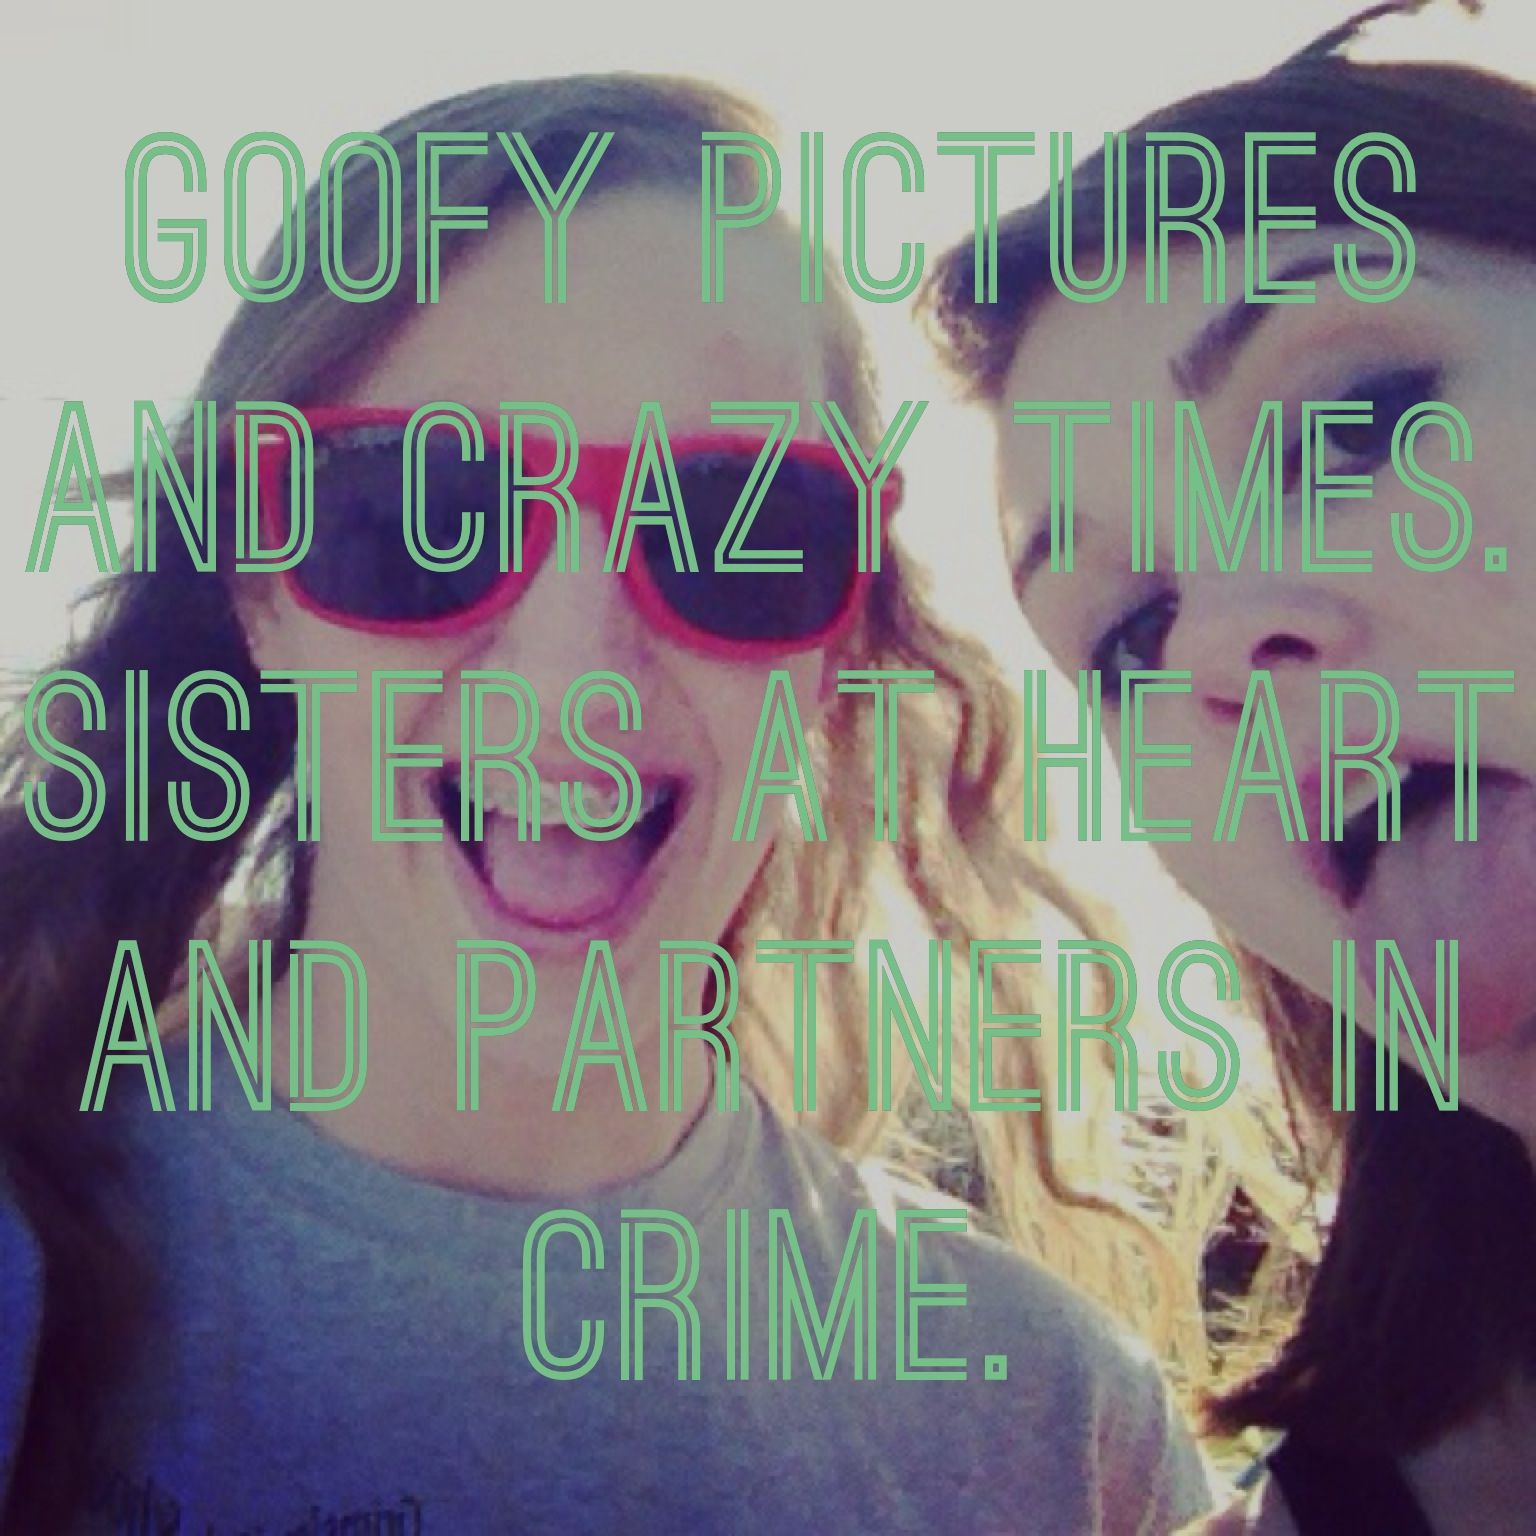 Goofy pictures and crazy times. Sisters at heart as ...